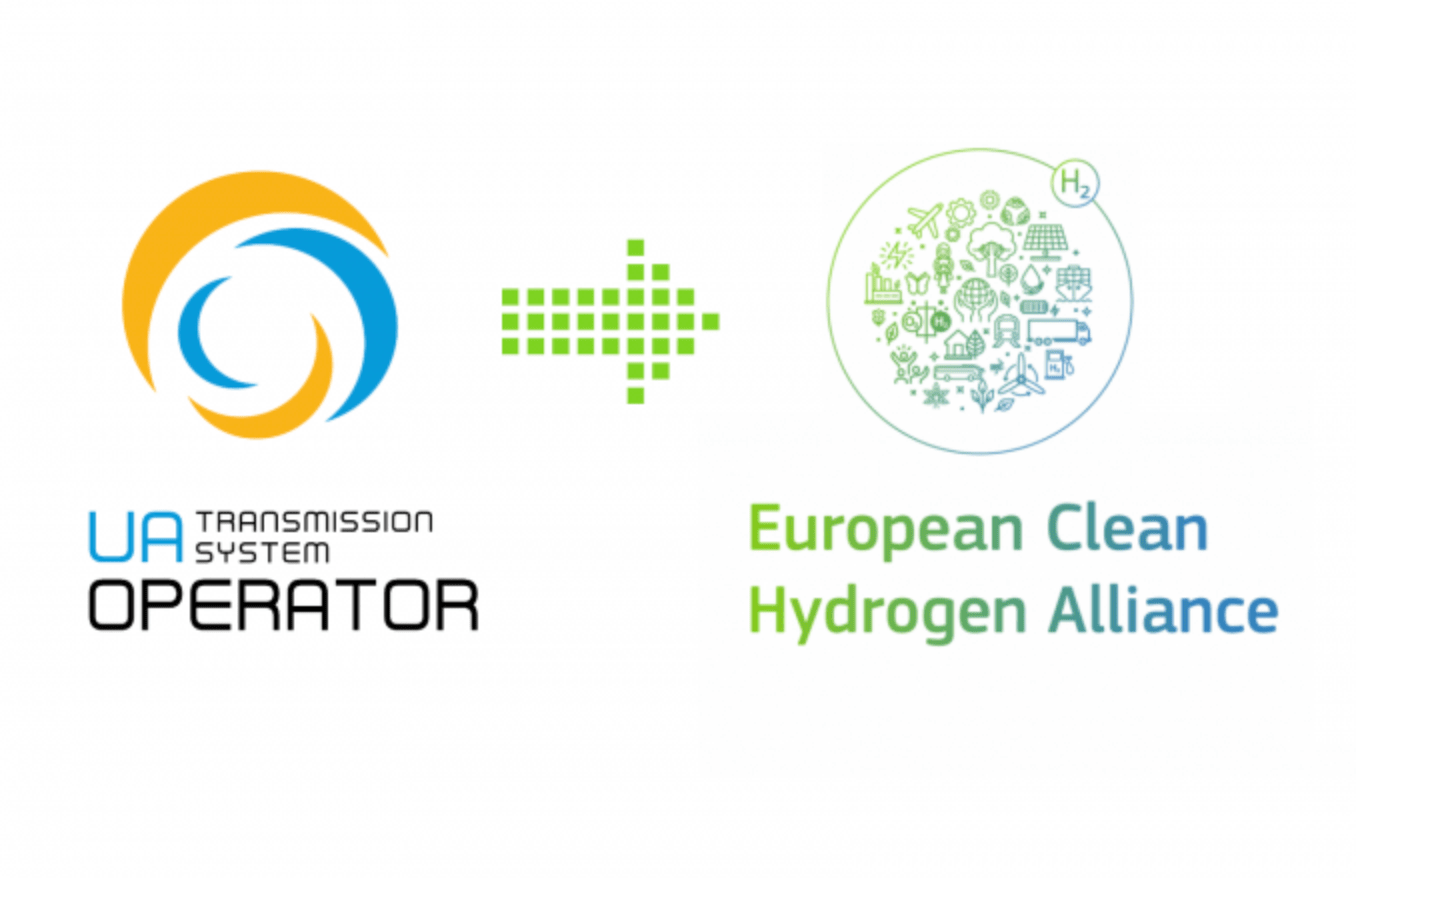 Ukrainian GTS Operator became a member of the European Clean Hydrogen Alliance